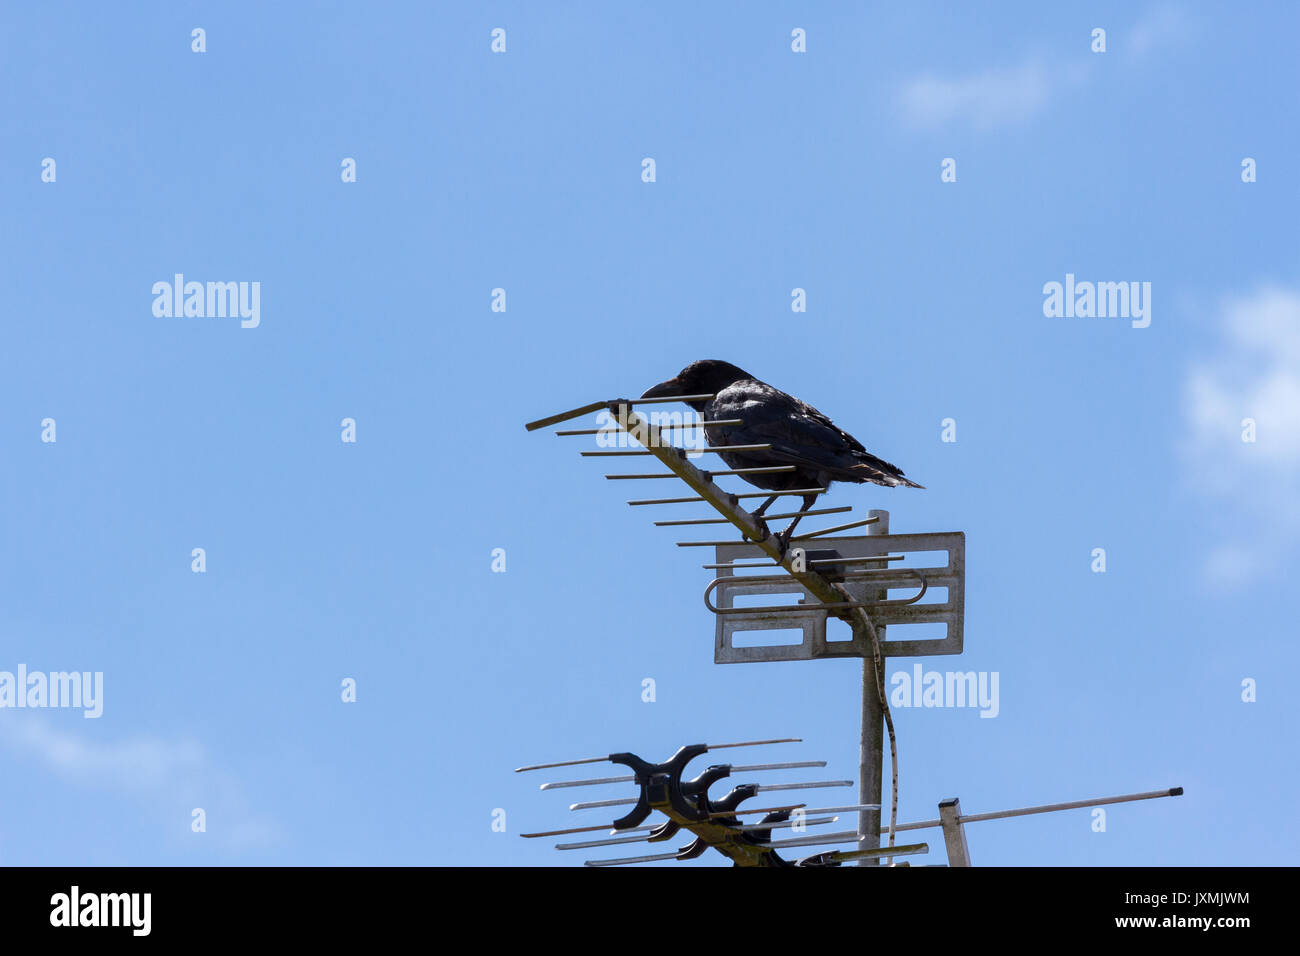 Carrion crow perched on a TV aerial - Stock Image